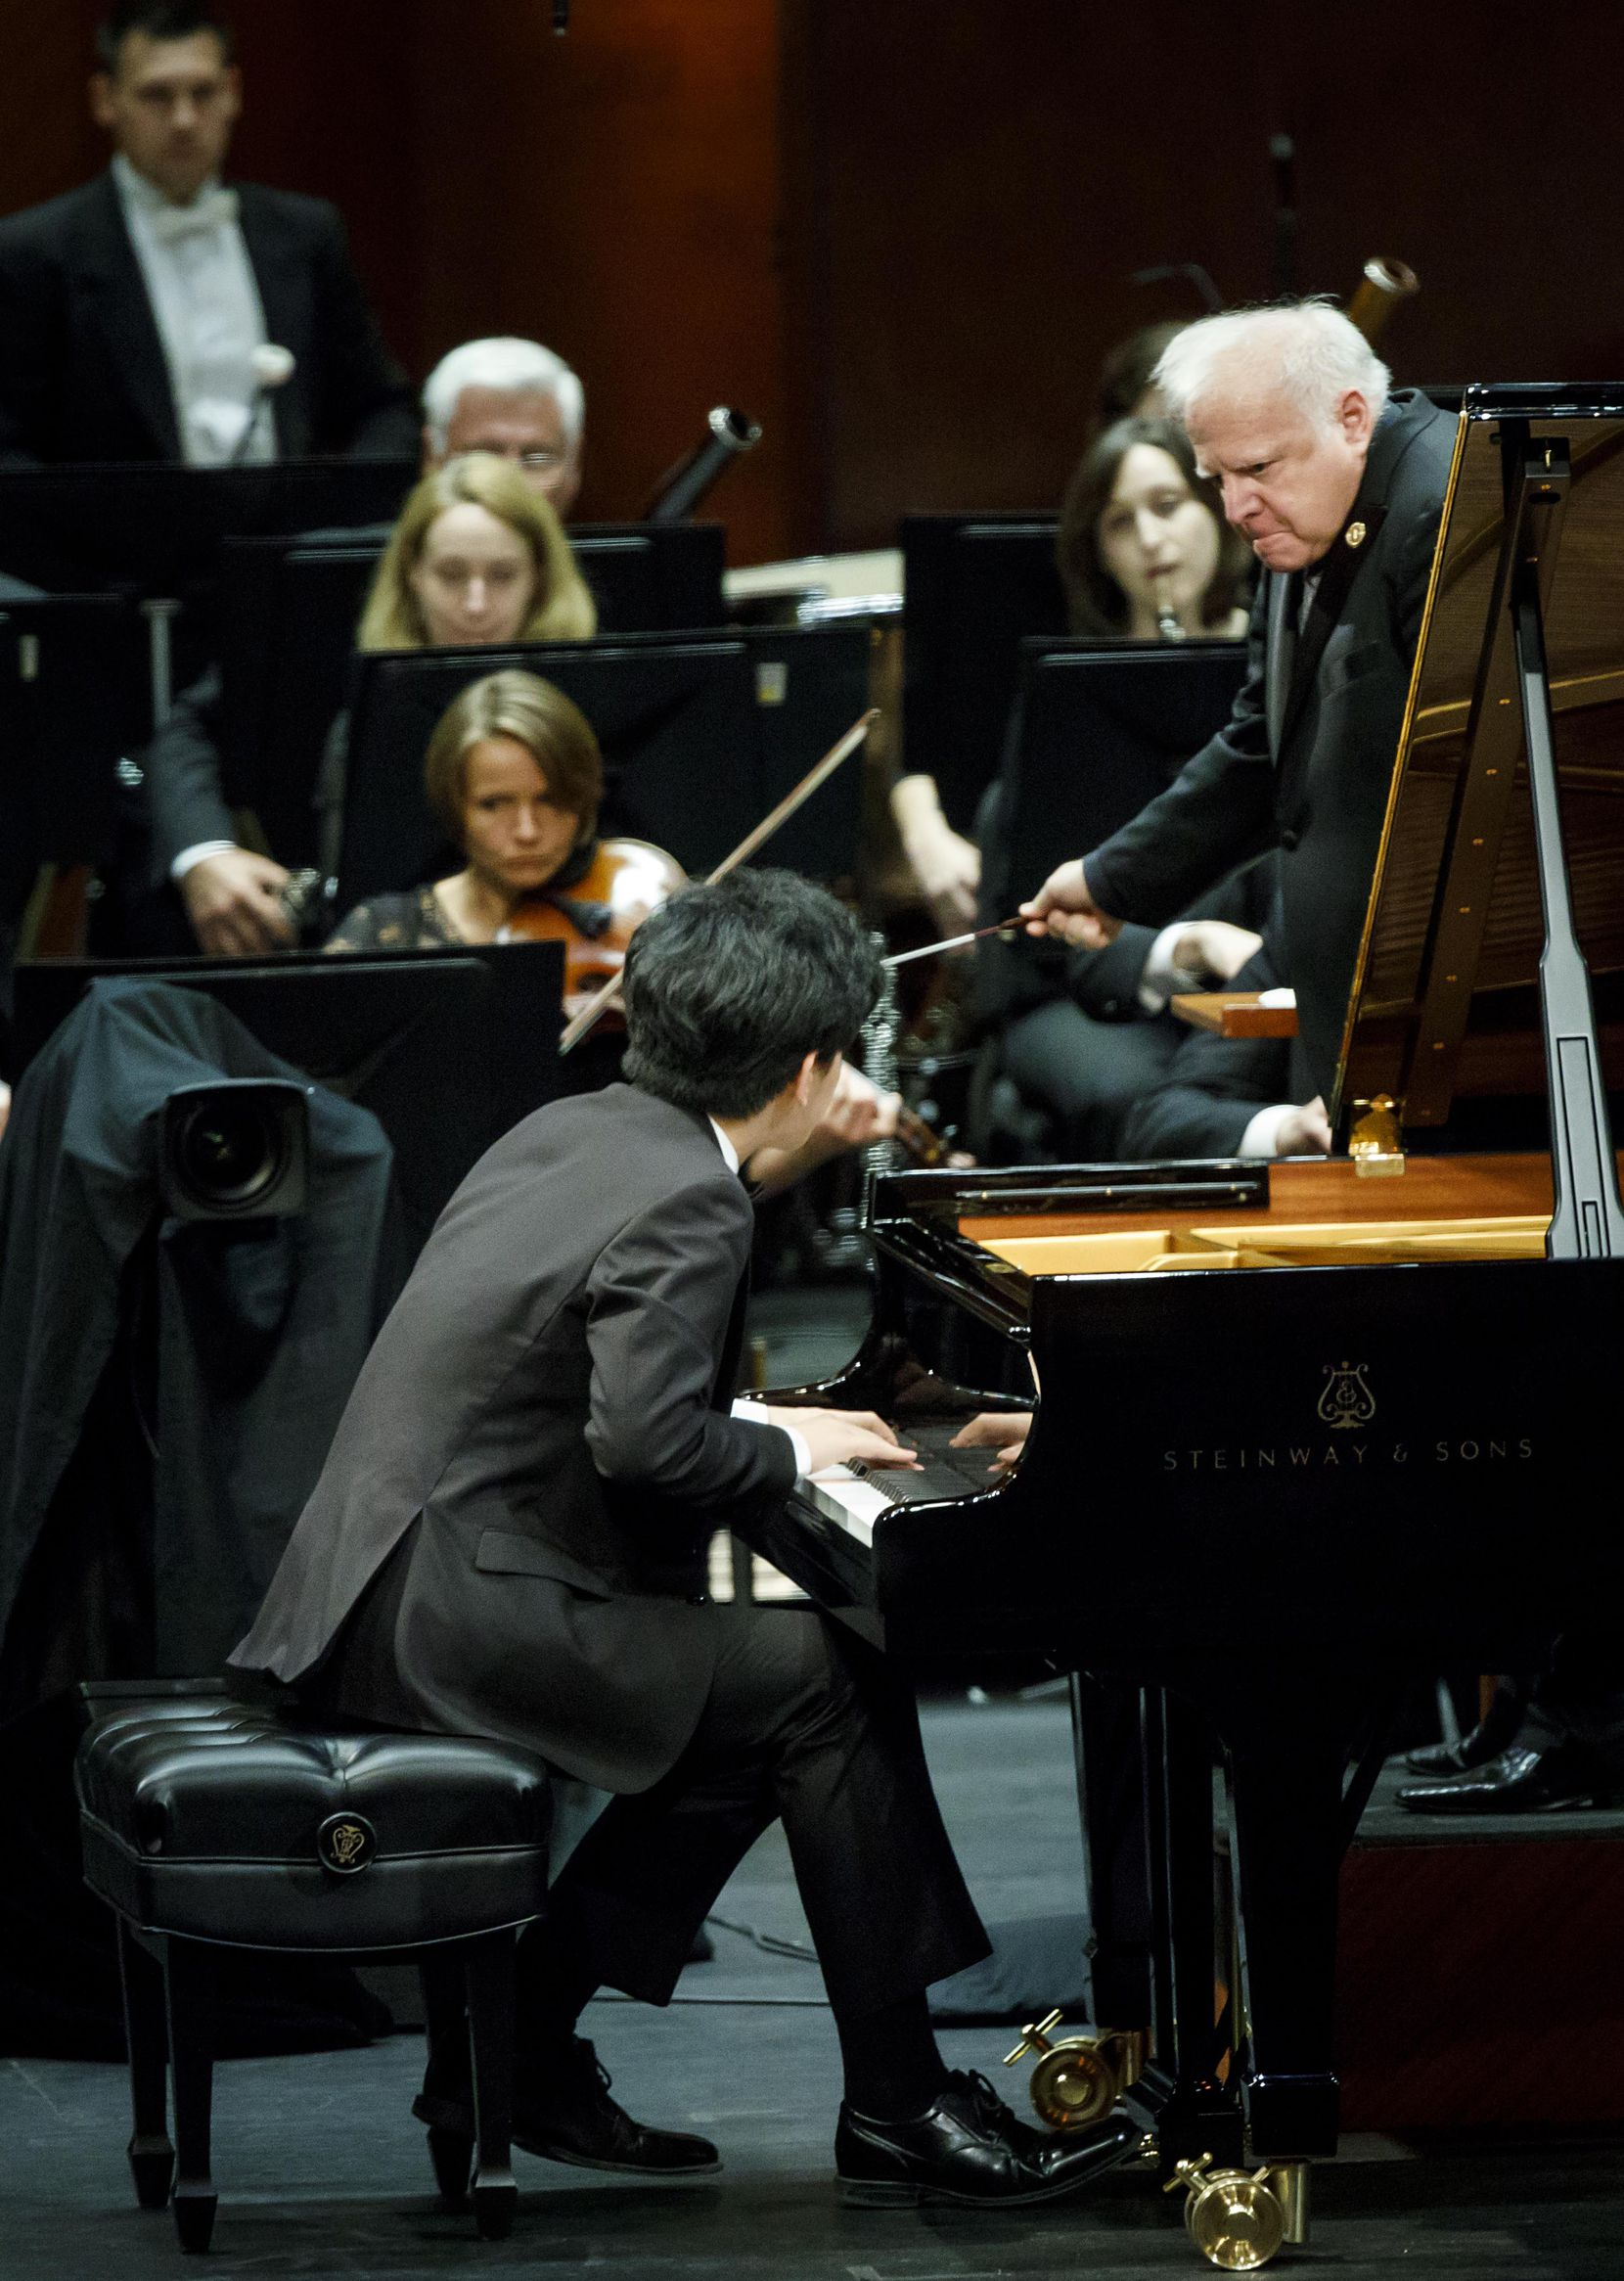 Daniel Hsu performs a piano concerto with the Fort Worth Symphony Orchestra, led by Leonard Slatkin, in the final round of the Van Cliburn International Piano Competition at Bass Performance Hall on June 10, 2017, in Fort Worth.